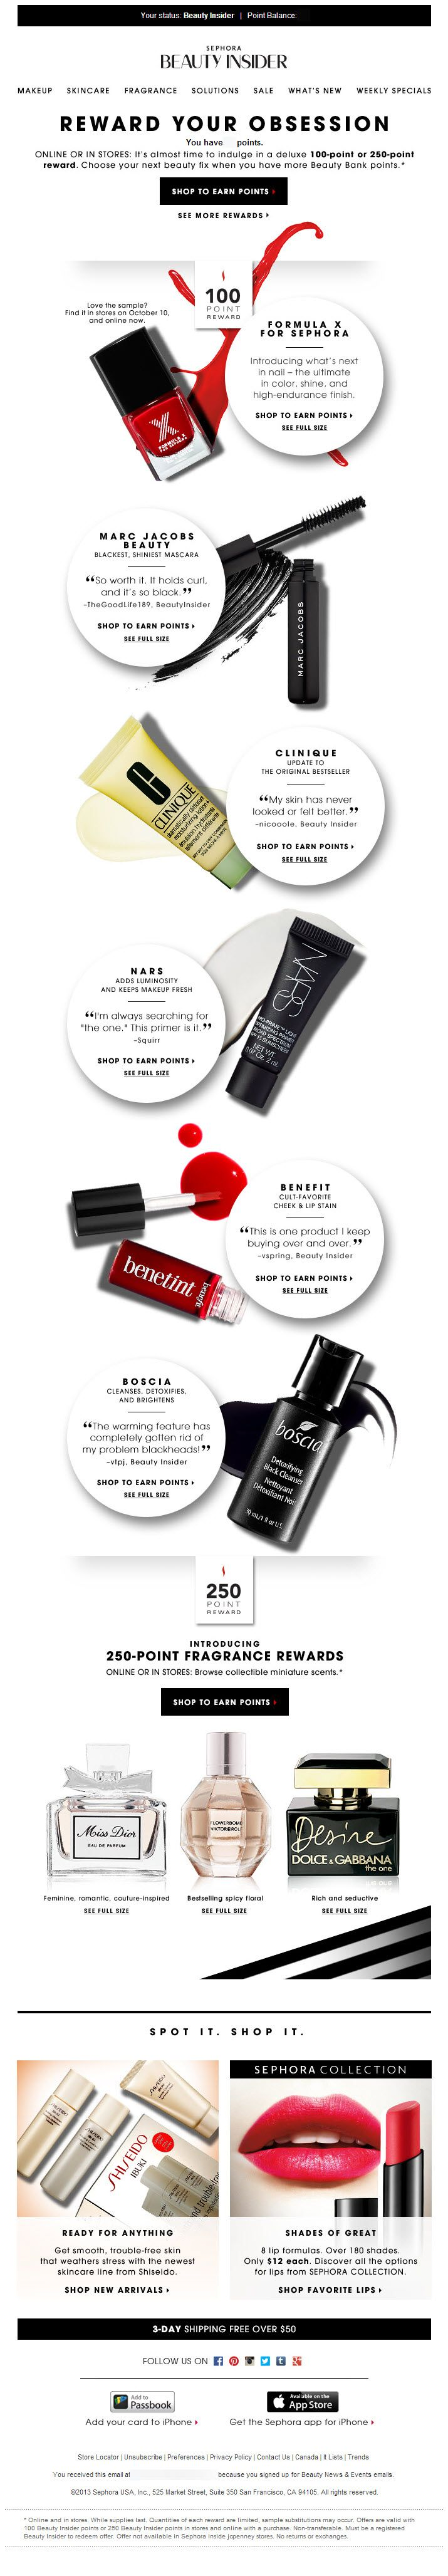 10/2/13 SL: 9 new rewards to choose from Great email encouraging customers to spend more to get free stuff. #Sephora